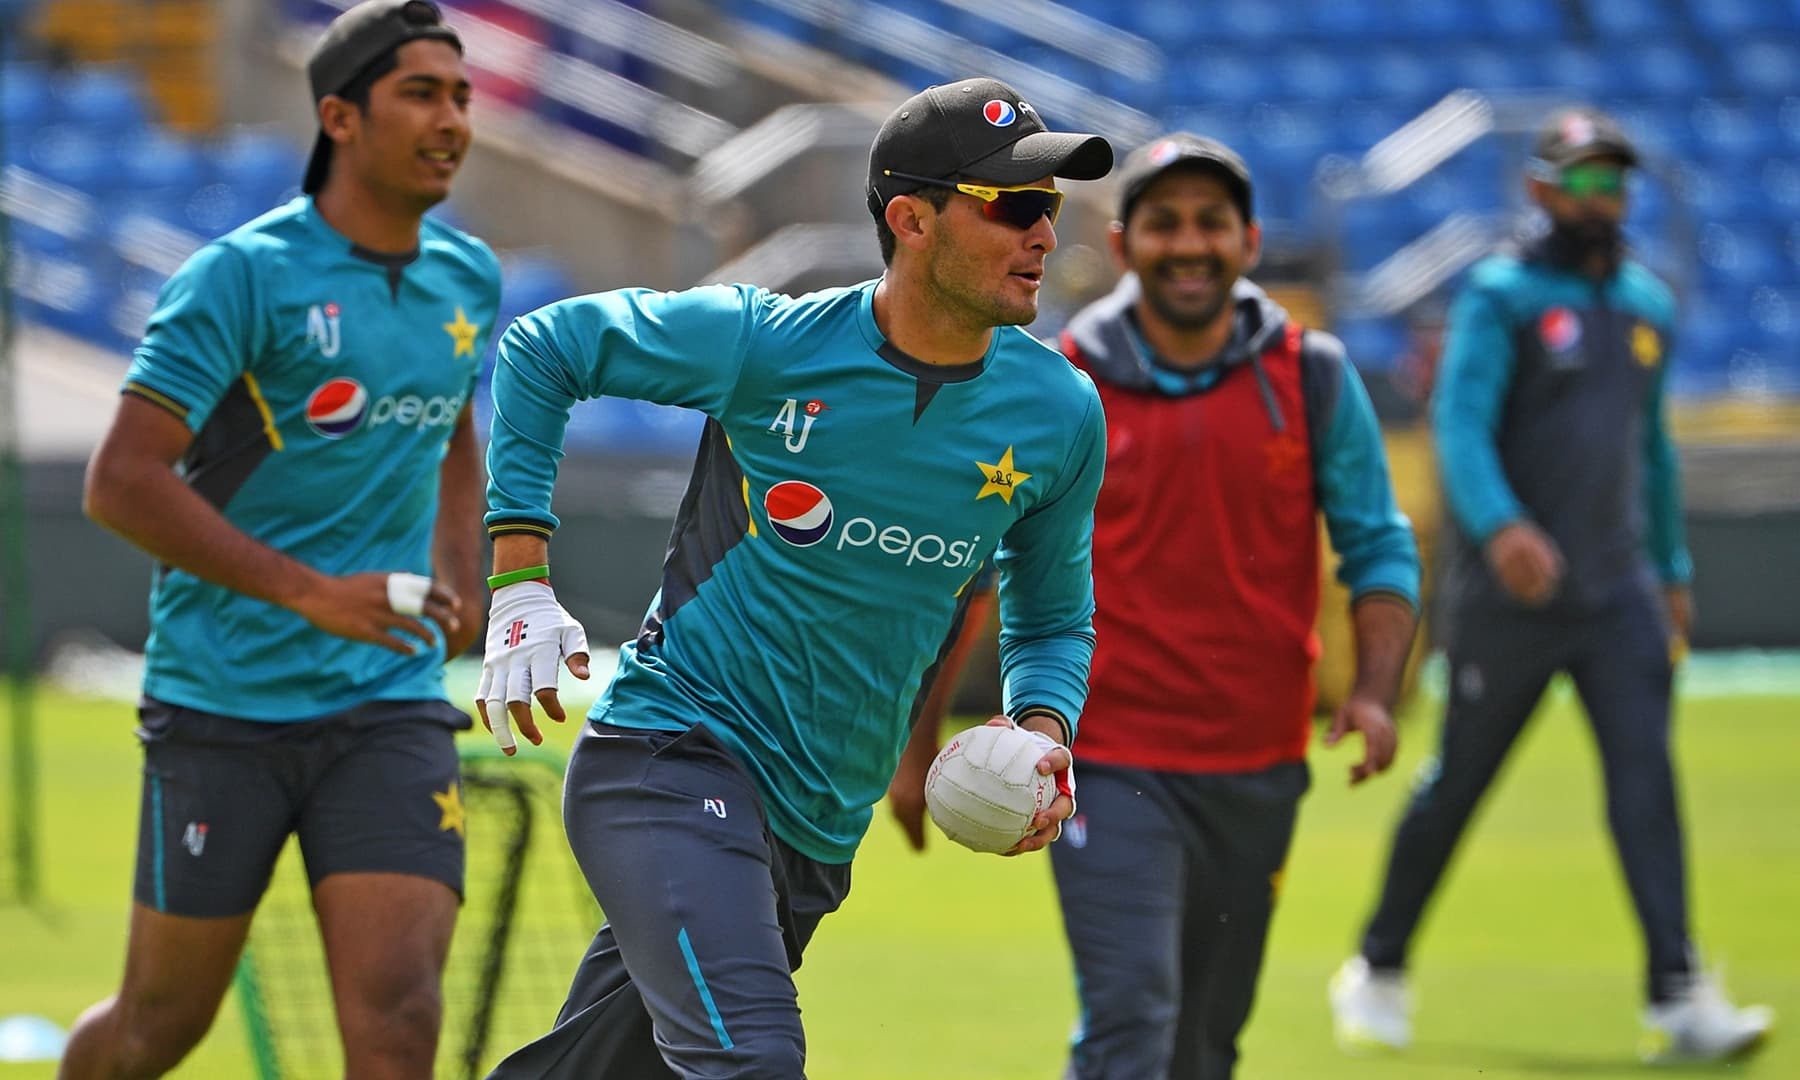 Shaheen Shah Afridi runs with the ball as skipper Sarfaraz looks on. — AFP